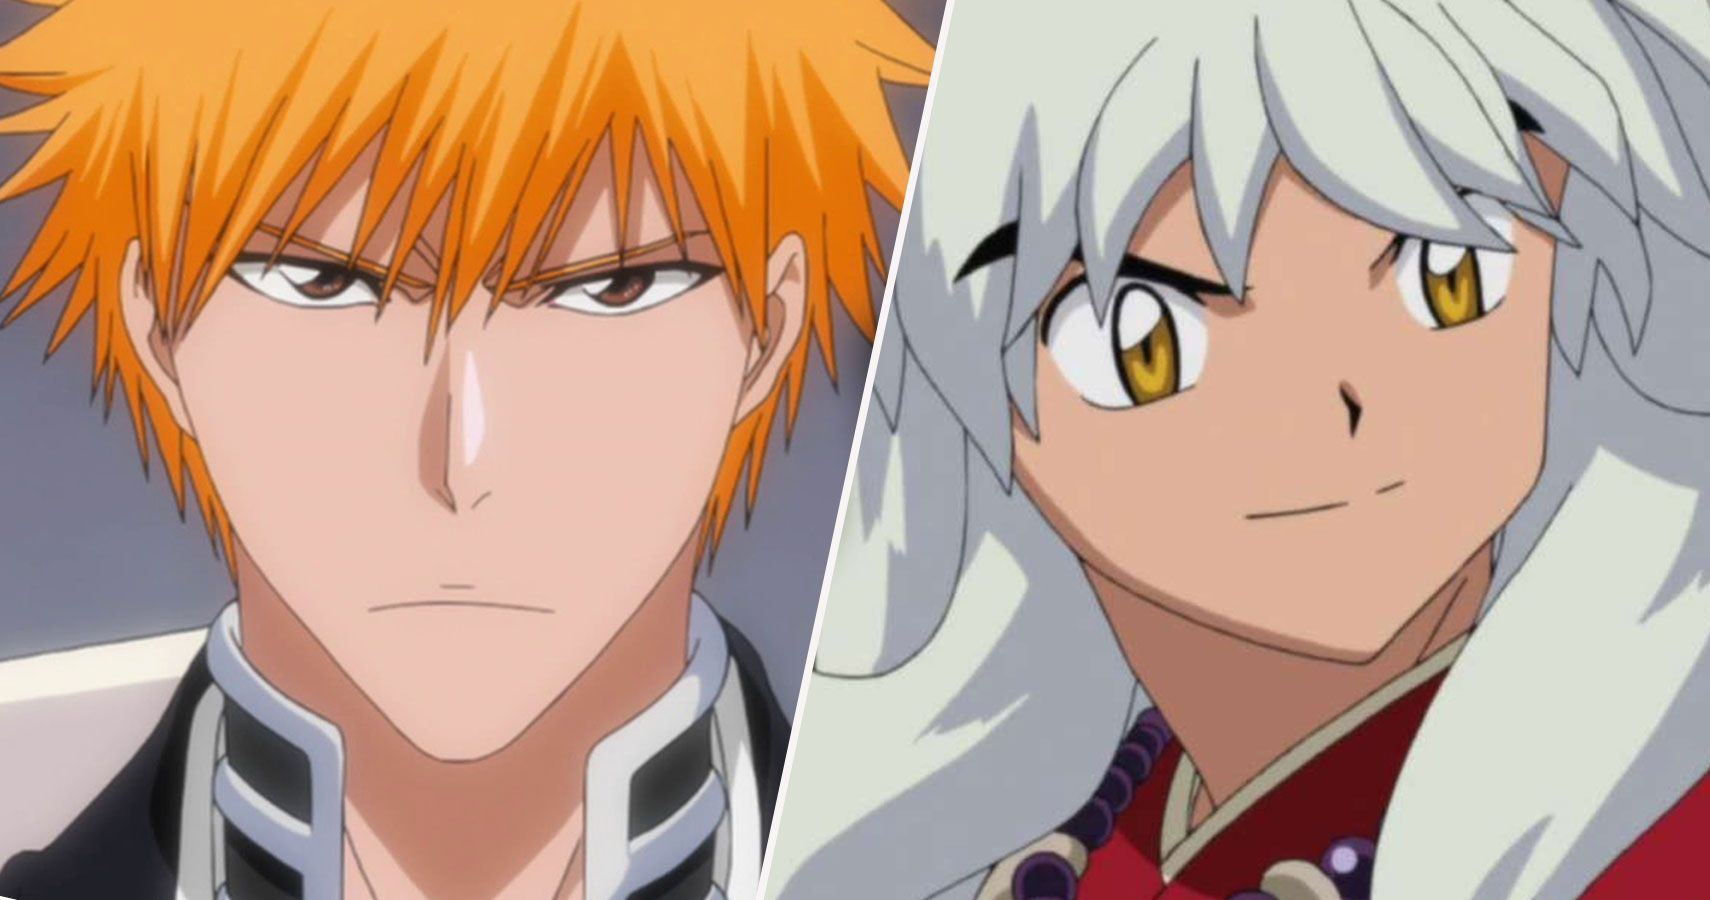 Anime Annihilation 25 Anime Icons We Need To See Fight Each Other